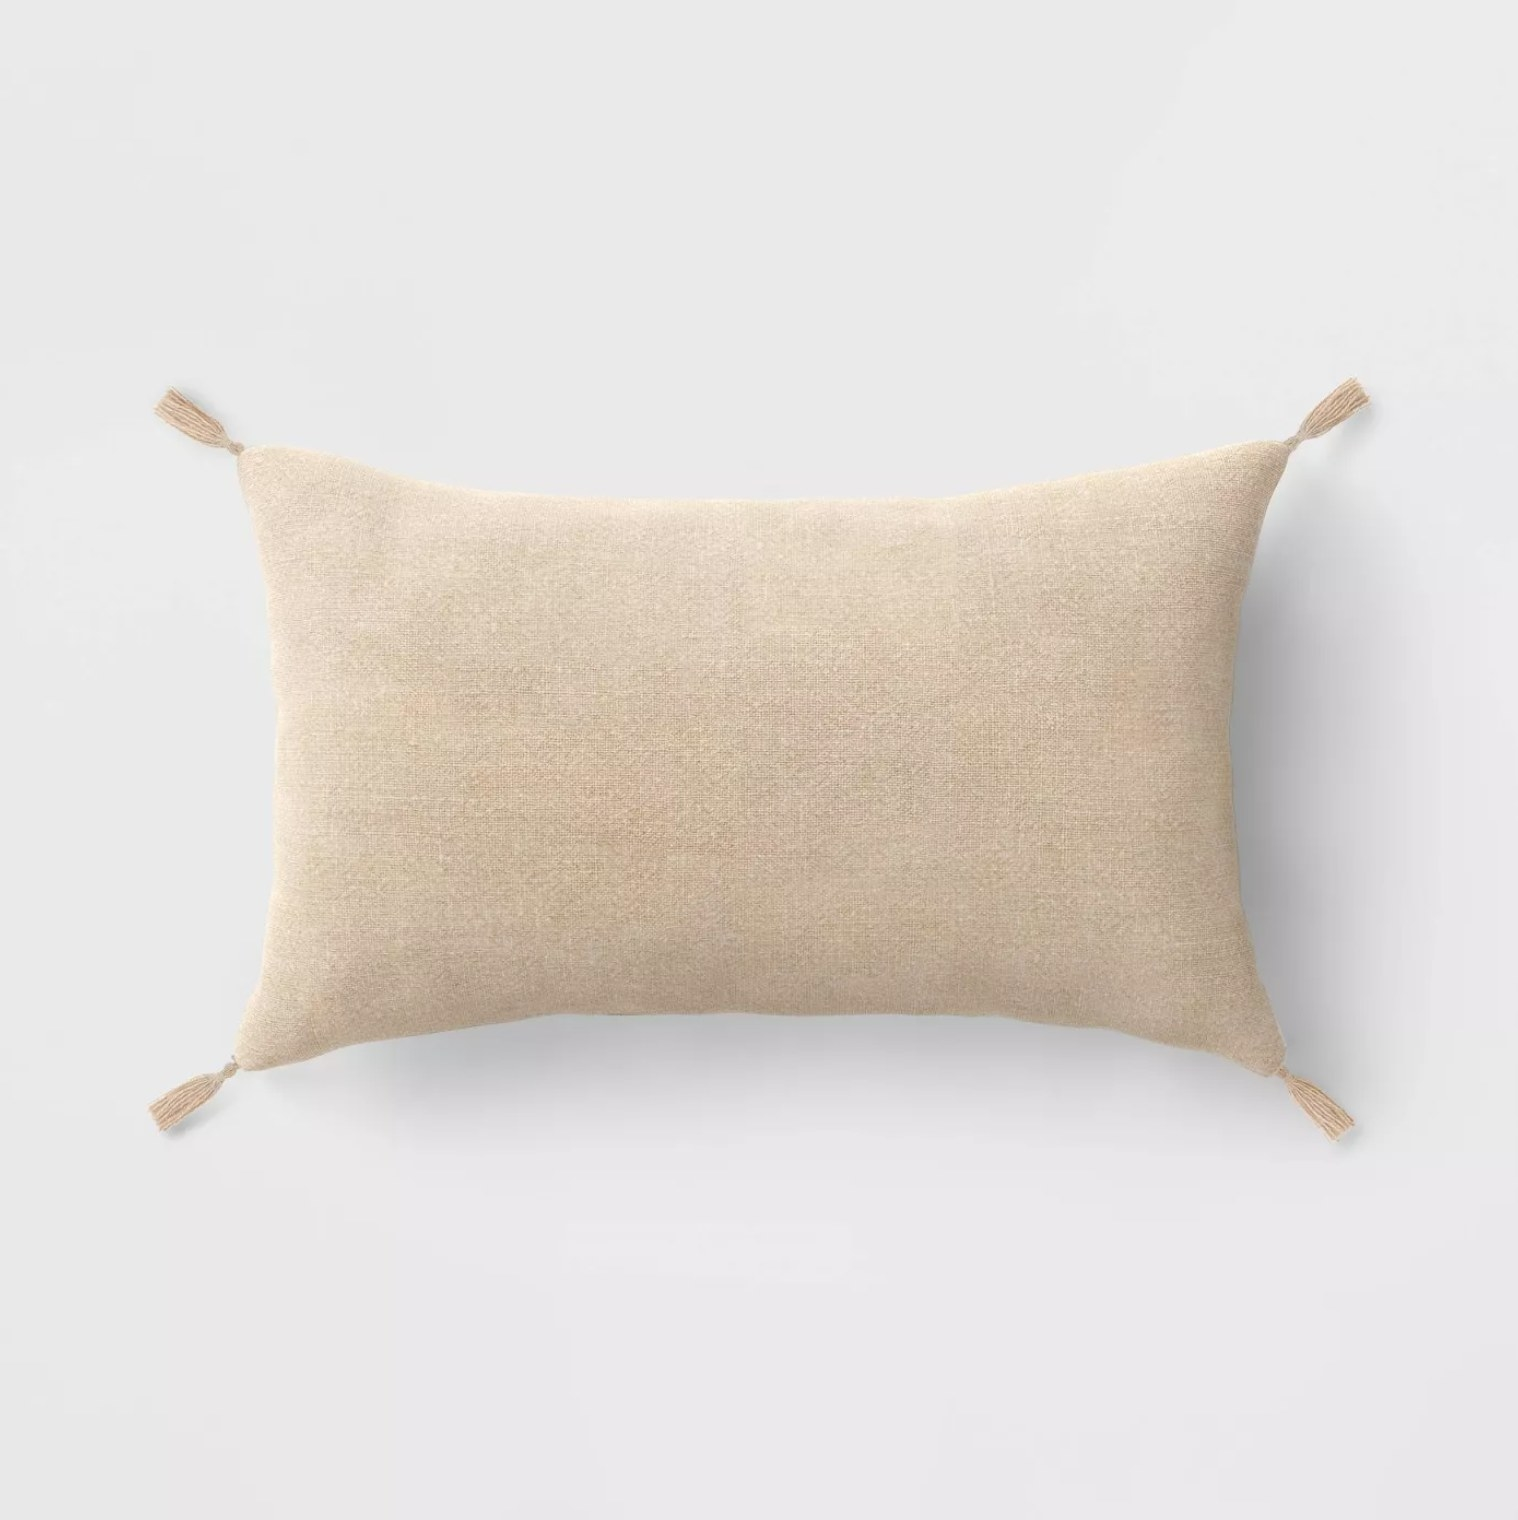 The pillow in the color neutral